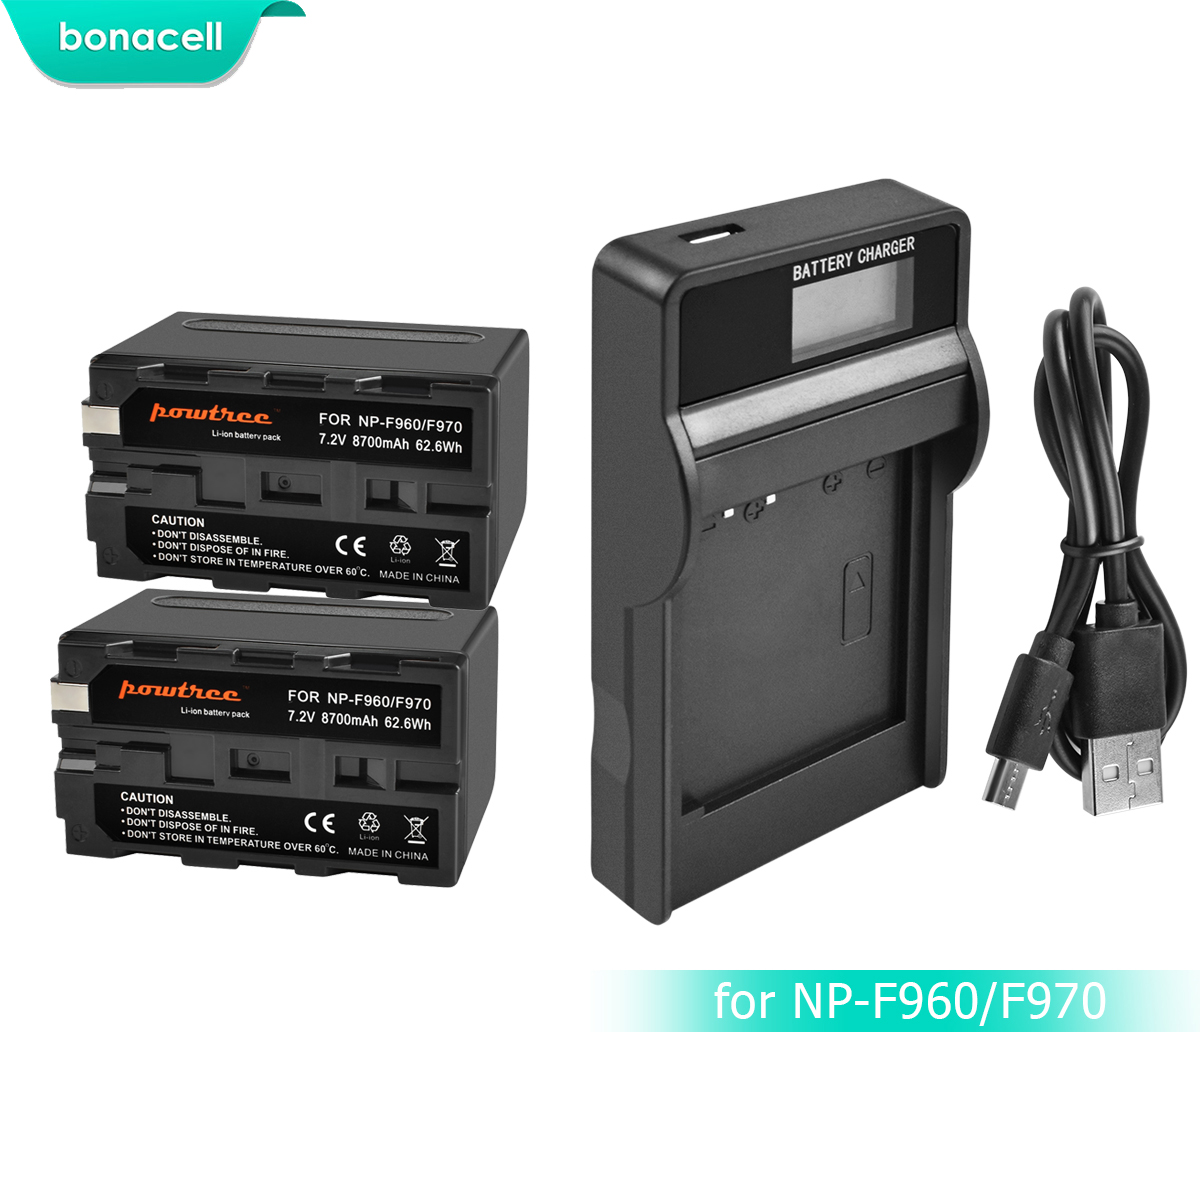 Bonacell 7 2V 8700mAh NP F960 NP F970 NP F960 F970 F950 Battery LCD Charger For